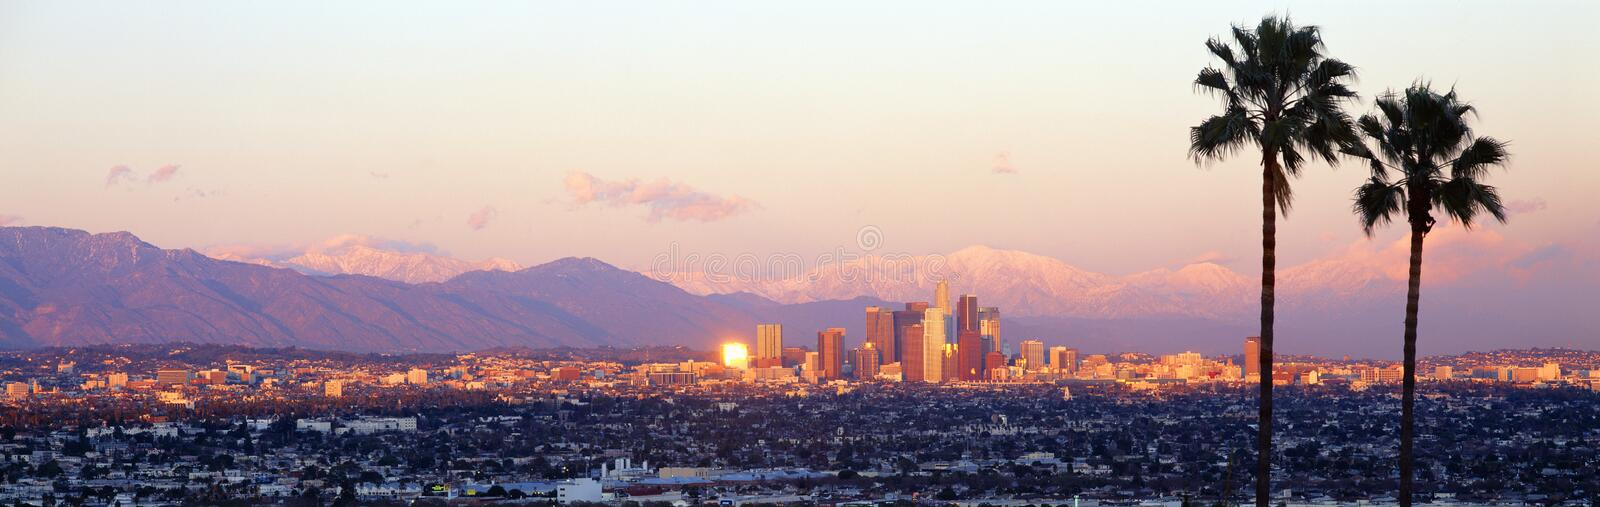 Downtown La Los Angeles Skyline California From 110 Fwy Stock Photo